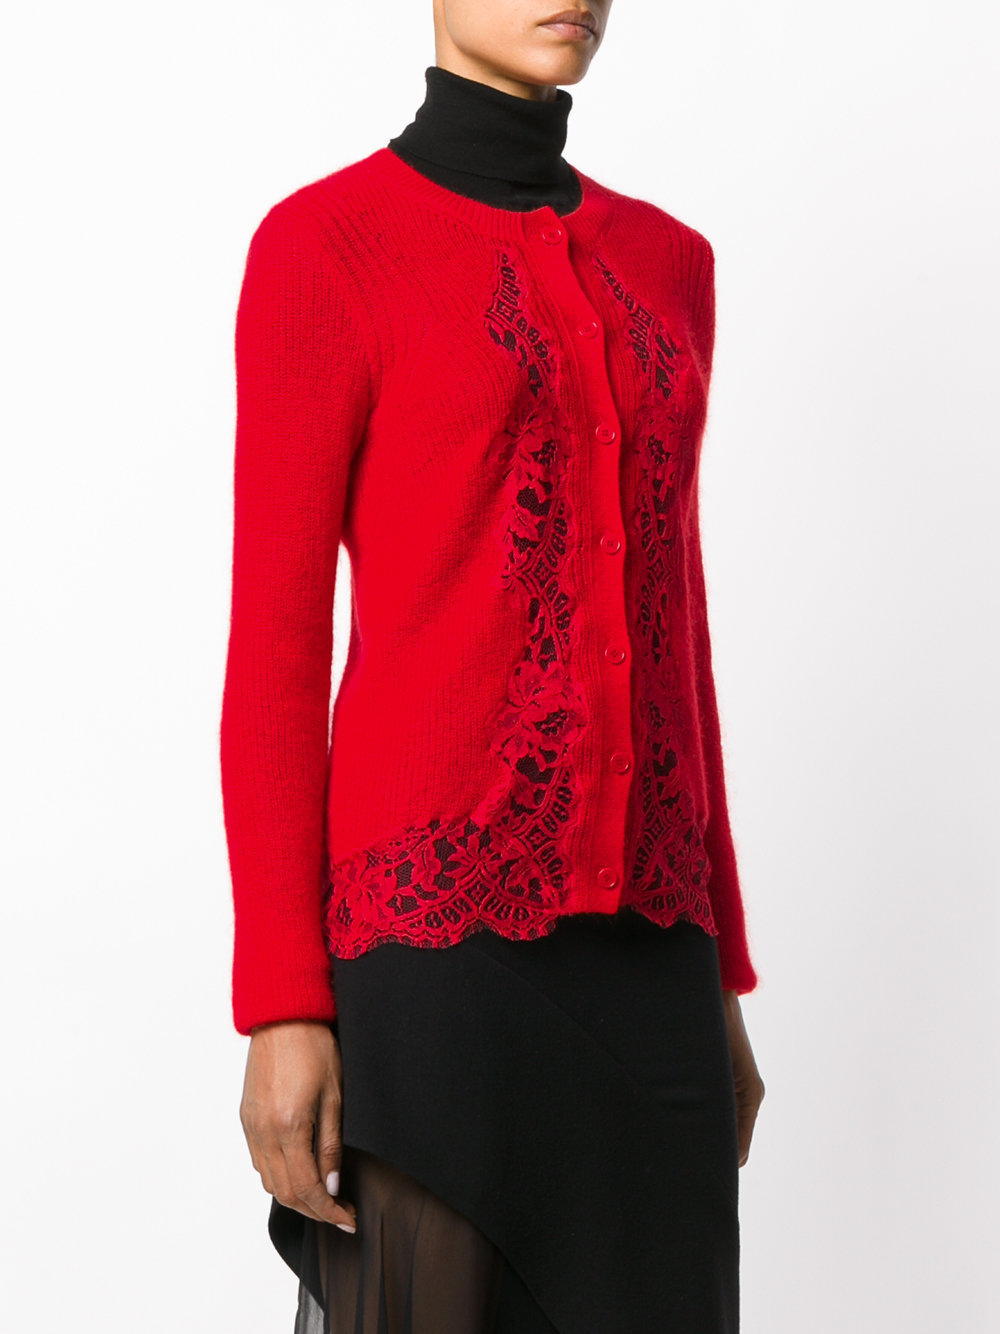 17-18AW G169 RIBBED KNIT CARDIGAN WITH LACE PANEL